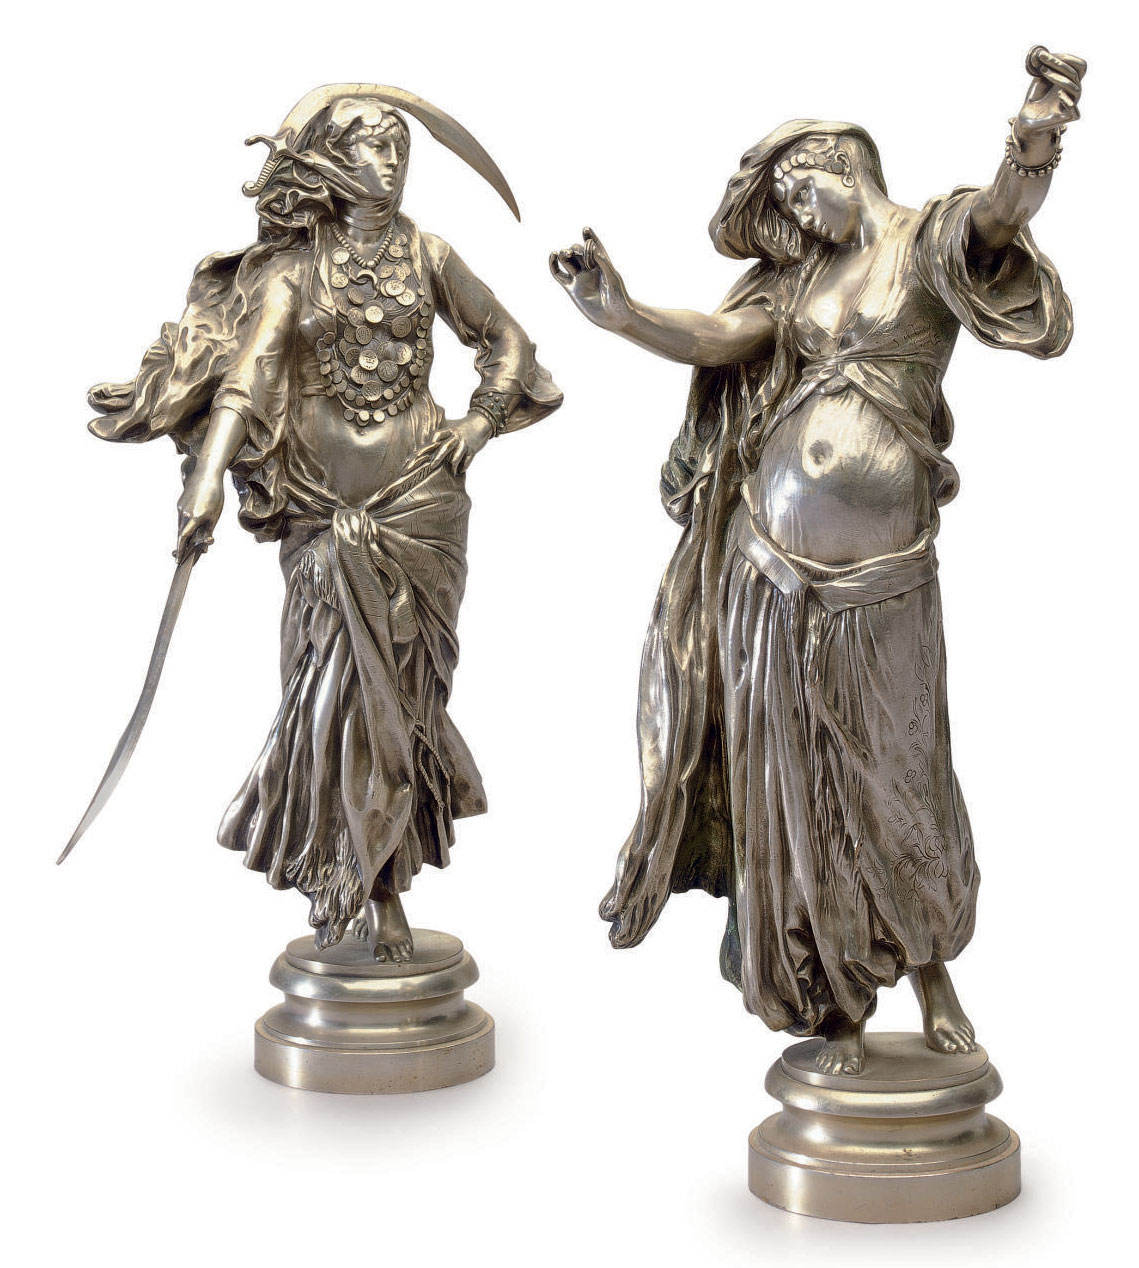 A PAIR OF FRENCH SILVERED-BRONZE ORIENTALIST FIGURES ENTITLED 'L'ALMEE' AND 'DANSE DU SABRE'